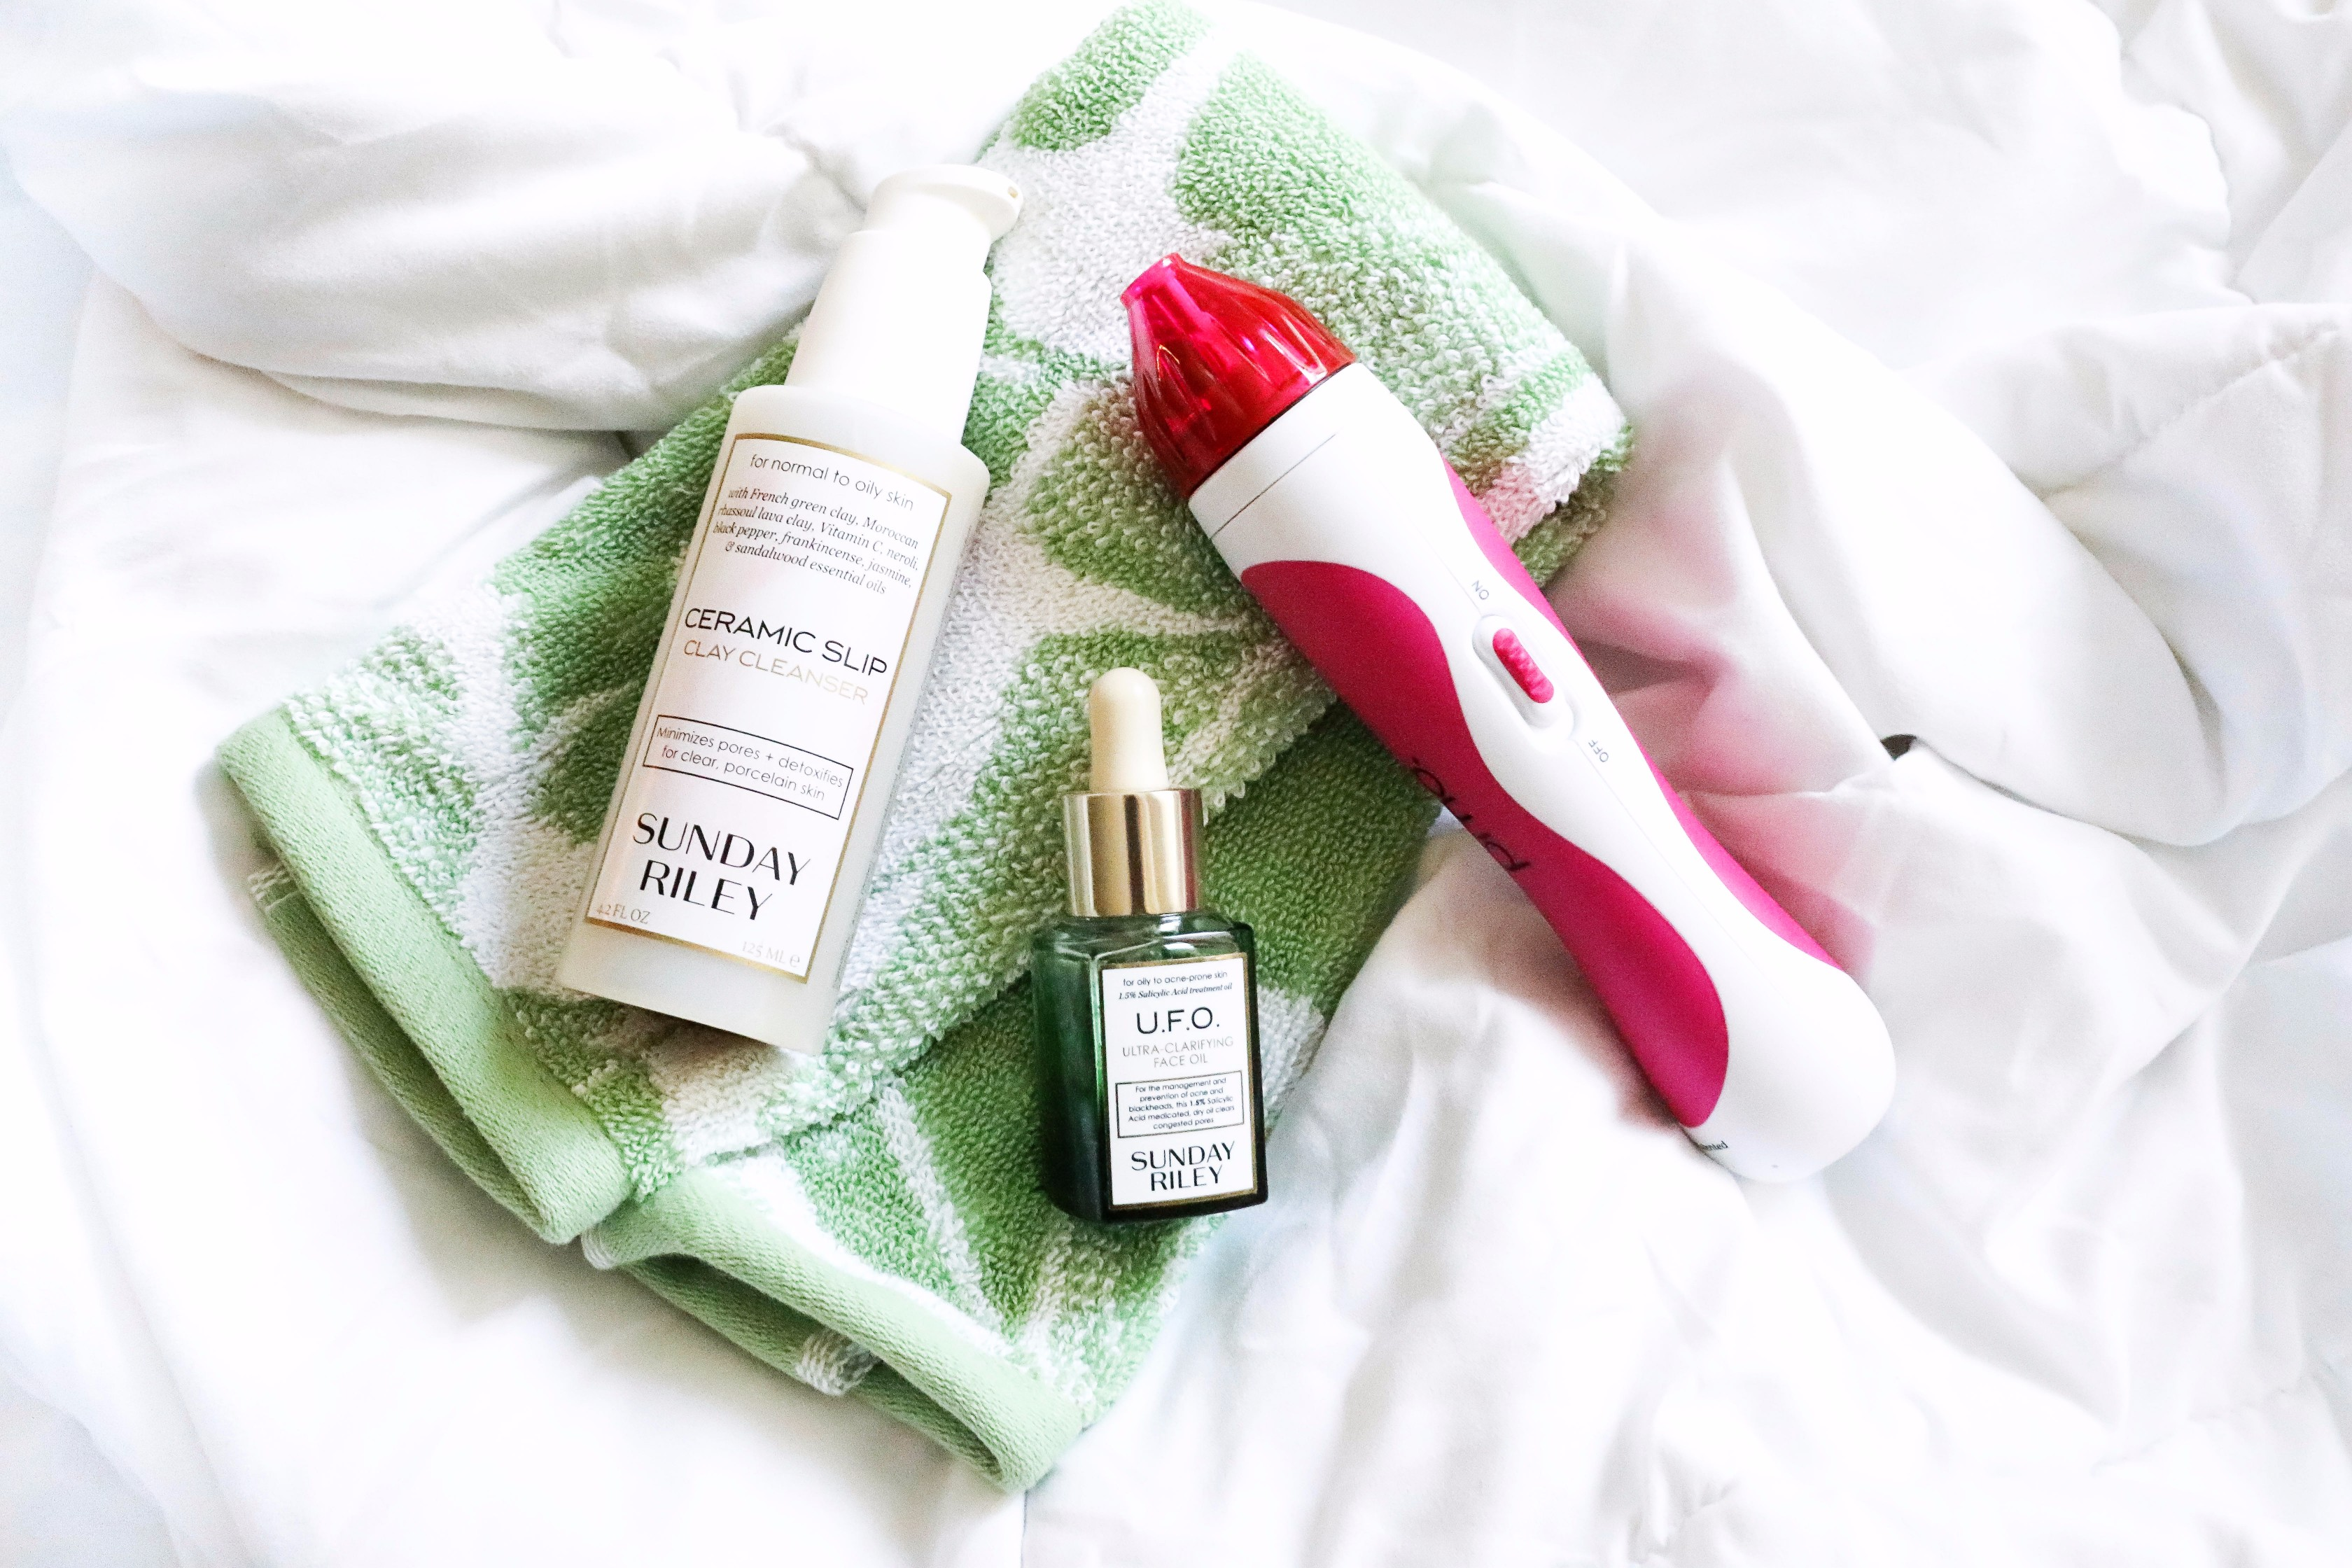 PMD microdermabrasion Sunday Riley face wash and UFO oil June favorites by fashion and lifestyle blogger lauren lindmark on daily dose of charm